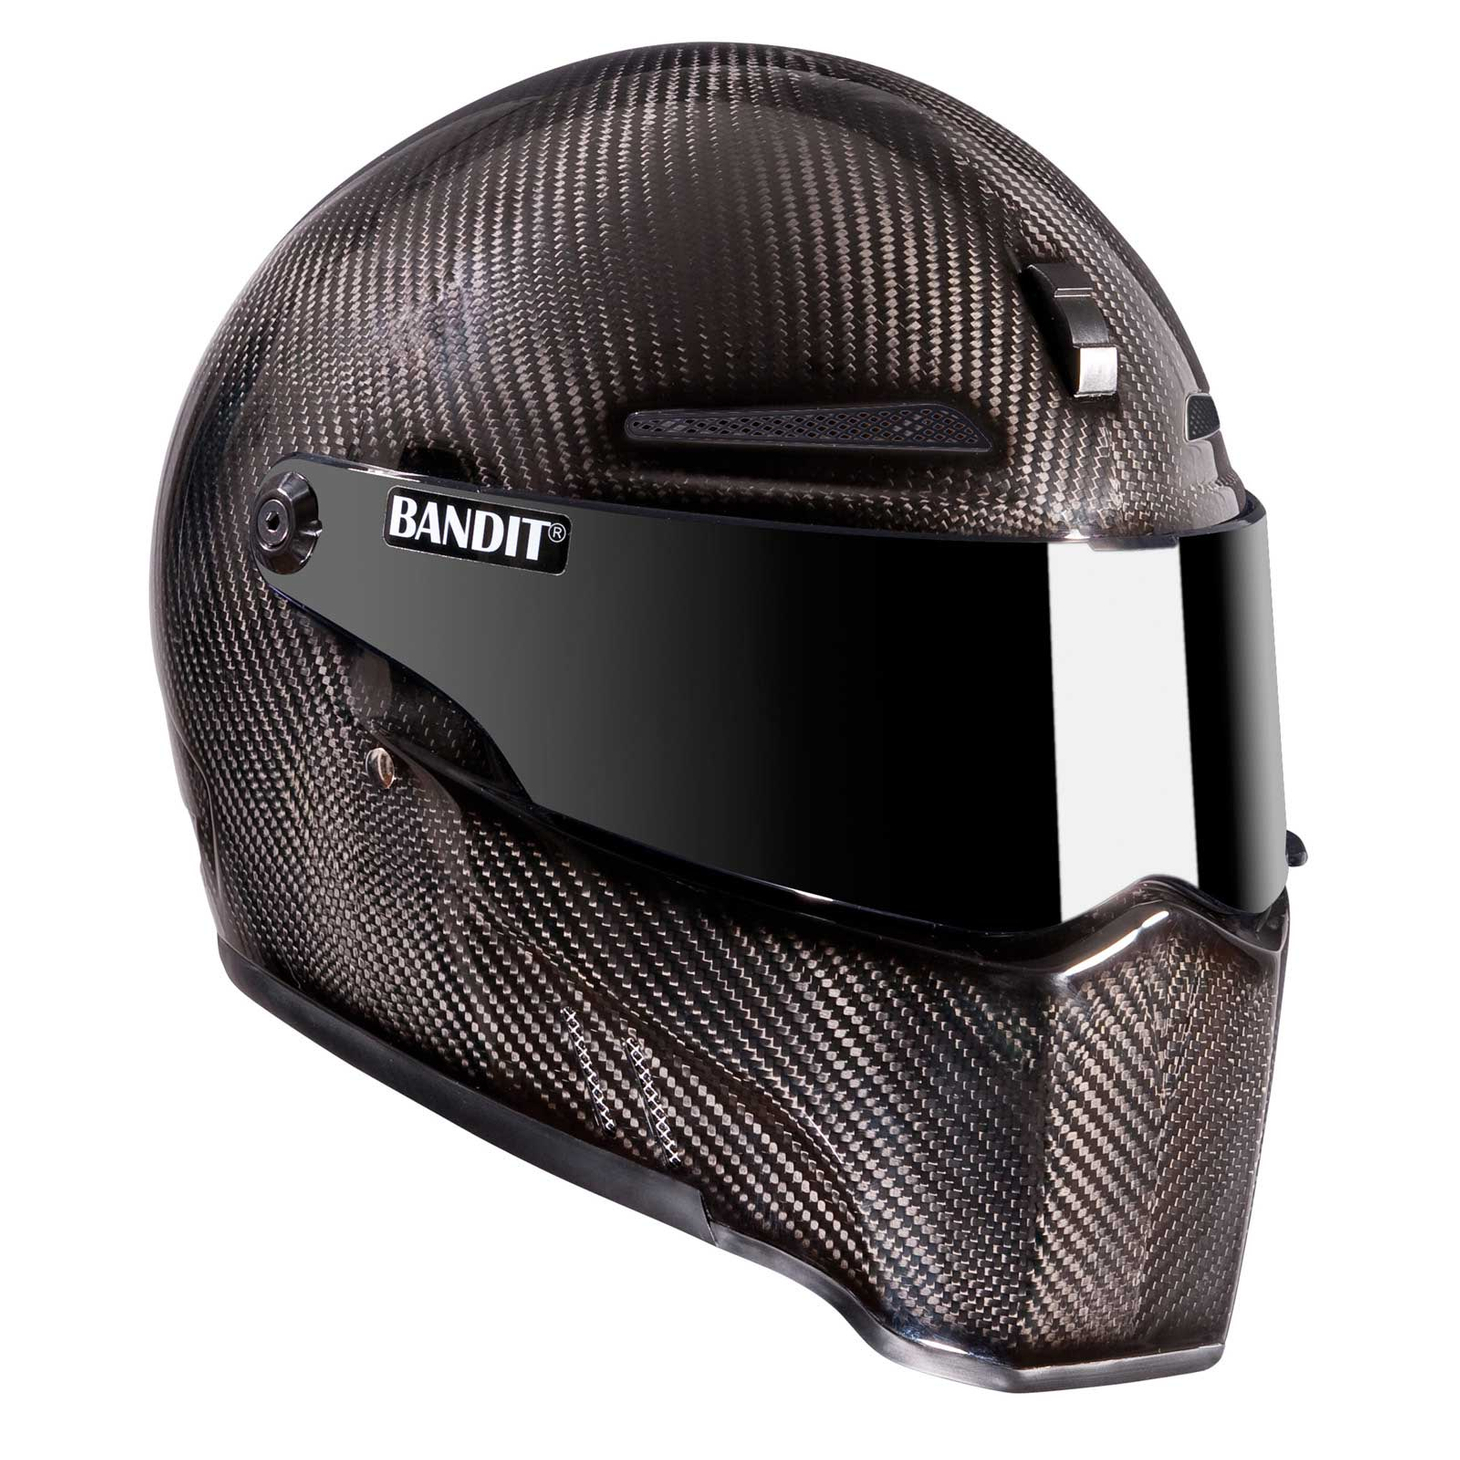 Bandit - New Original Alien II - Motorcycle Helmet - for Streetfighter – Picture 4